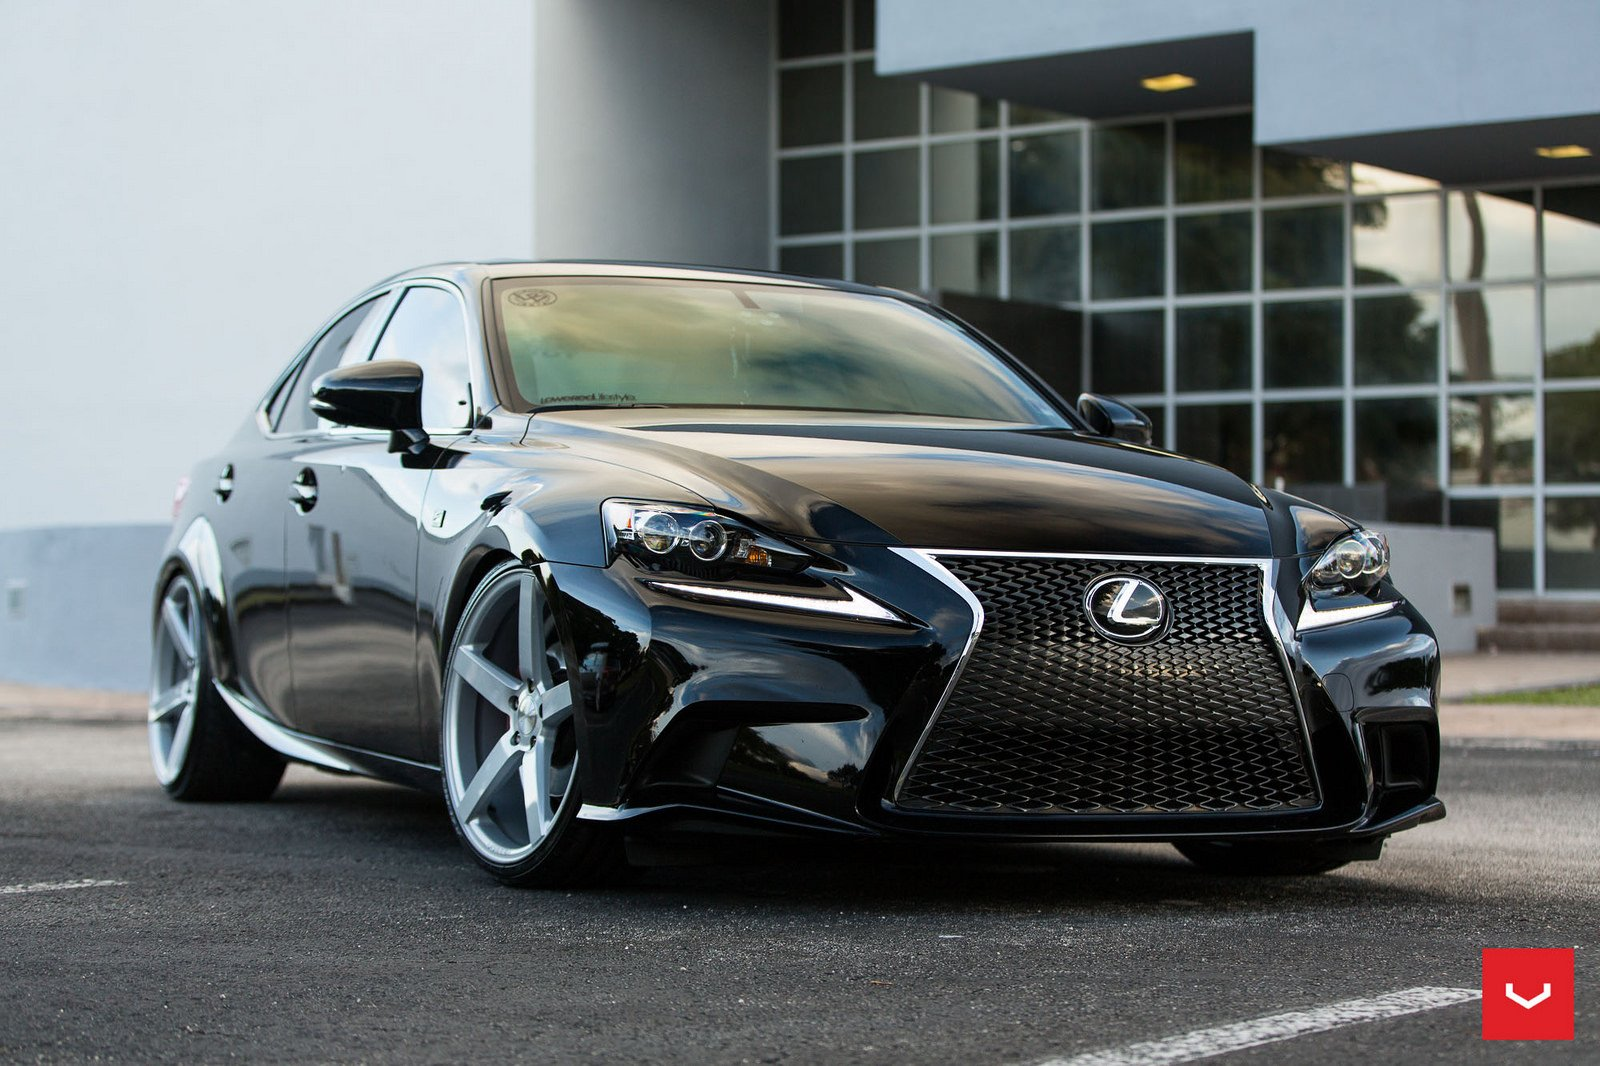 lexus is 250 f sport black vossen wheels cars wallpaper 1600x1066 886056 wallpaperup. Black Bedroom Furniture Sets. Home Design Ideas